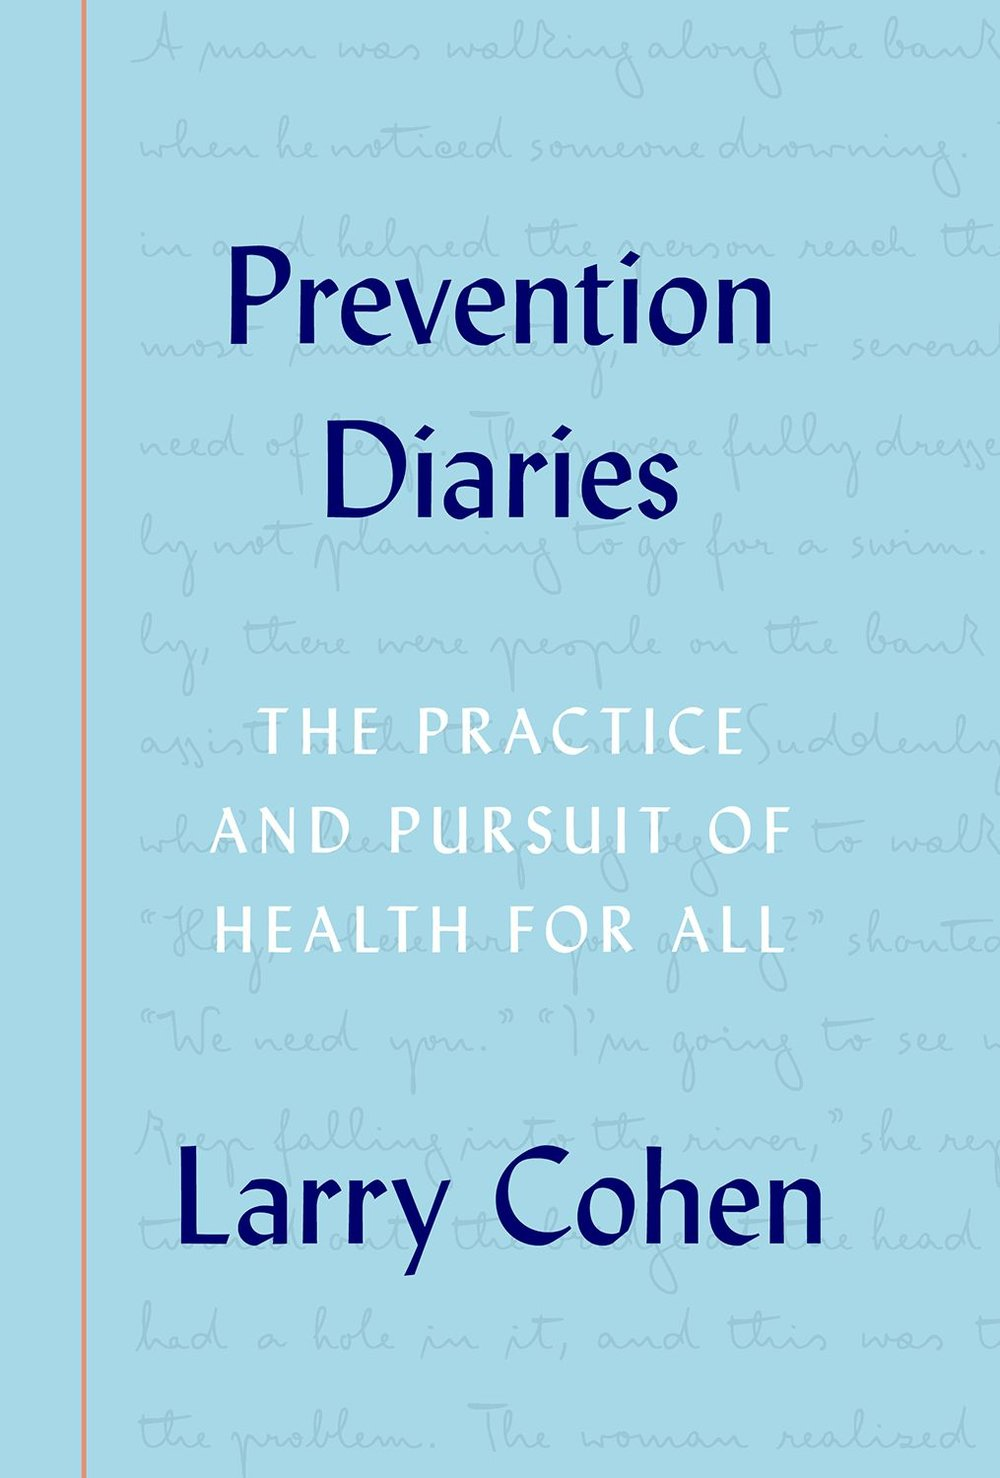 Prevention Diaries.jpg